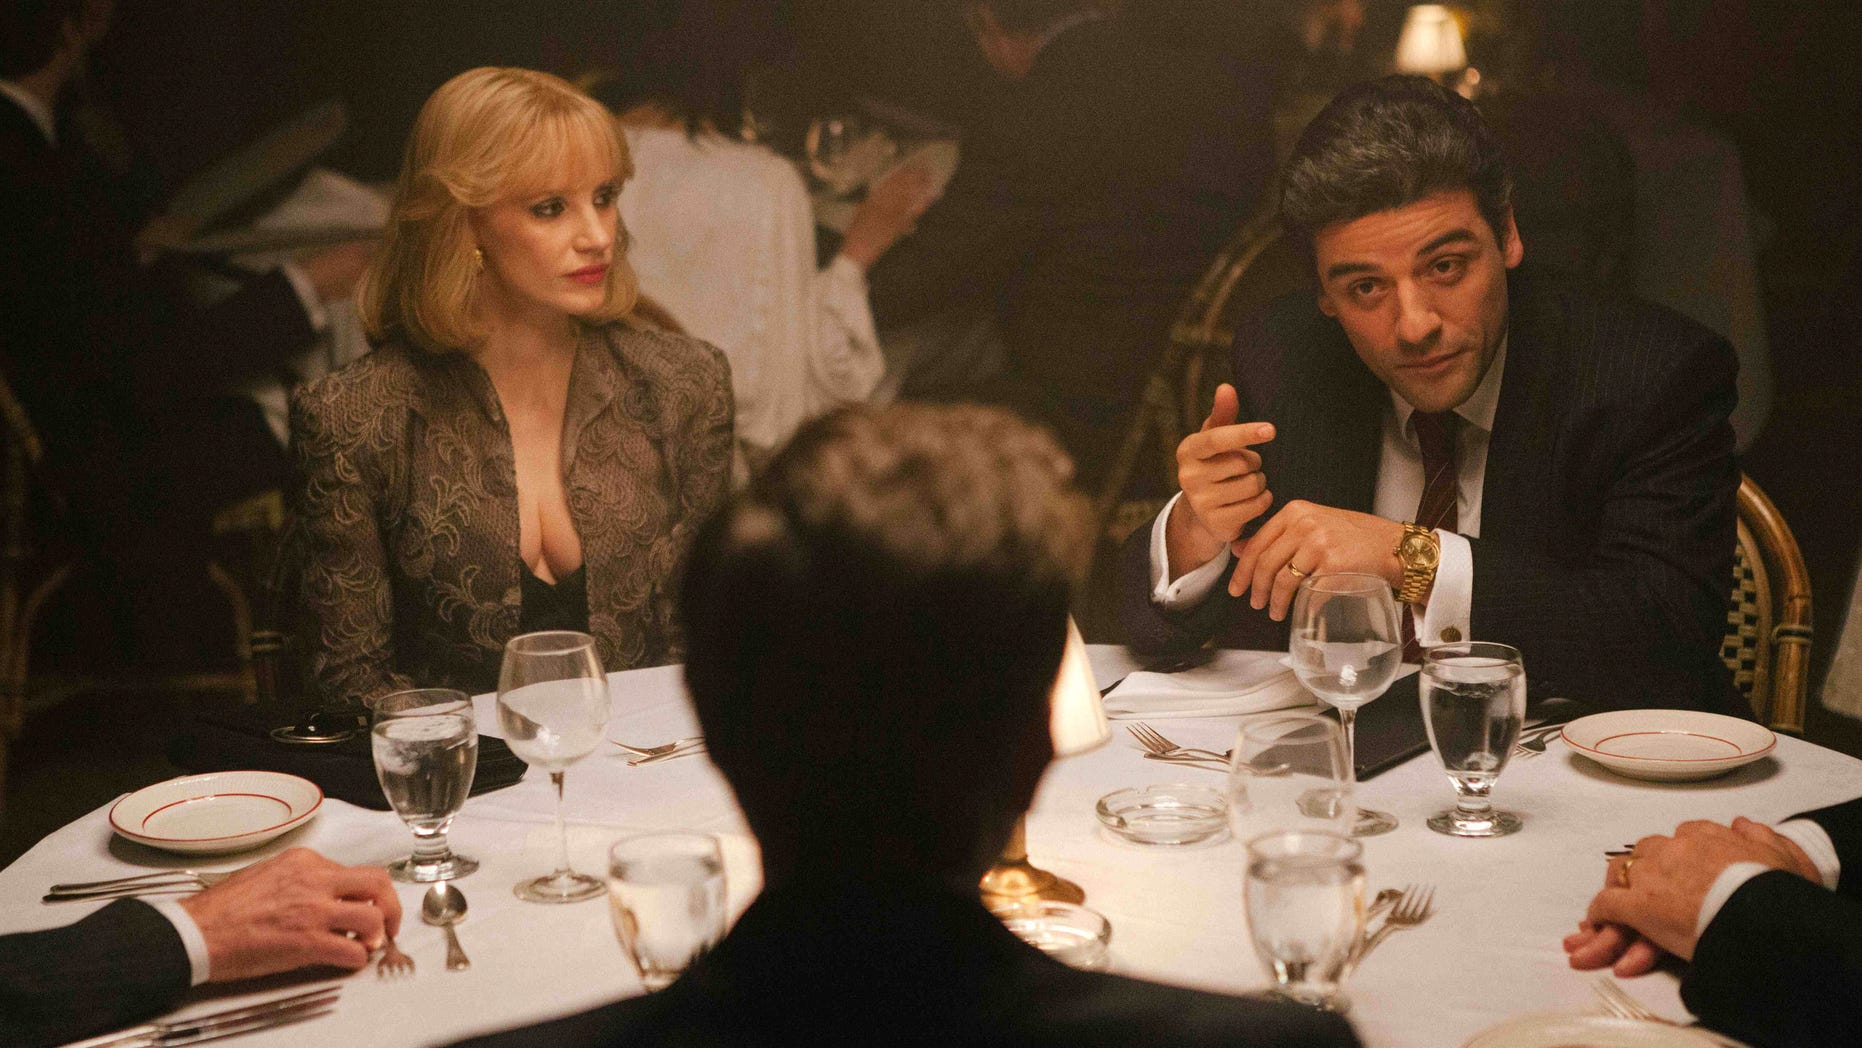 """In this image released by A24 Films, Jessica Chastain, left, and Oscar Isaac appear in a scene from """"A Most Violent Year."""" Chastain was nominated for a Golden Globe for best supporting actress in a drama for her role in the film on Thursday, Dec. 11, 2014. The 72nd annual Golden Globe awards will air on NBC on Sunday, Jan. 11. (AP Photo/A24 Films, Atsushi Nishijima)"""